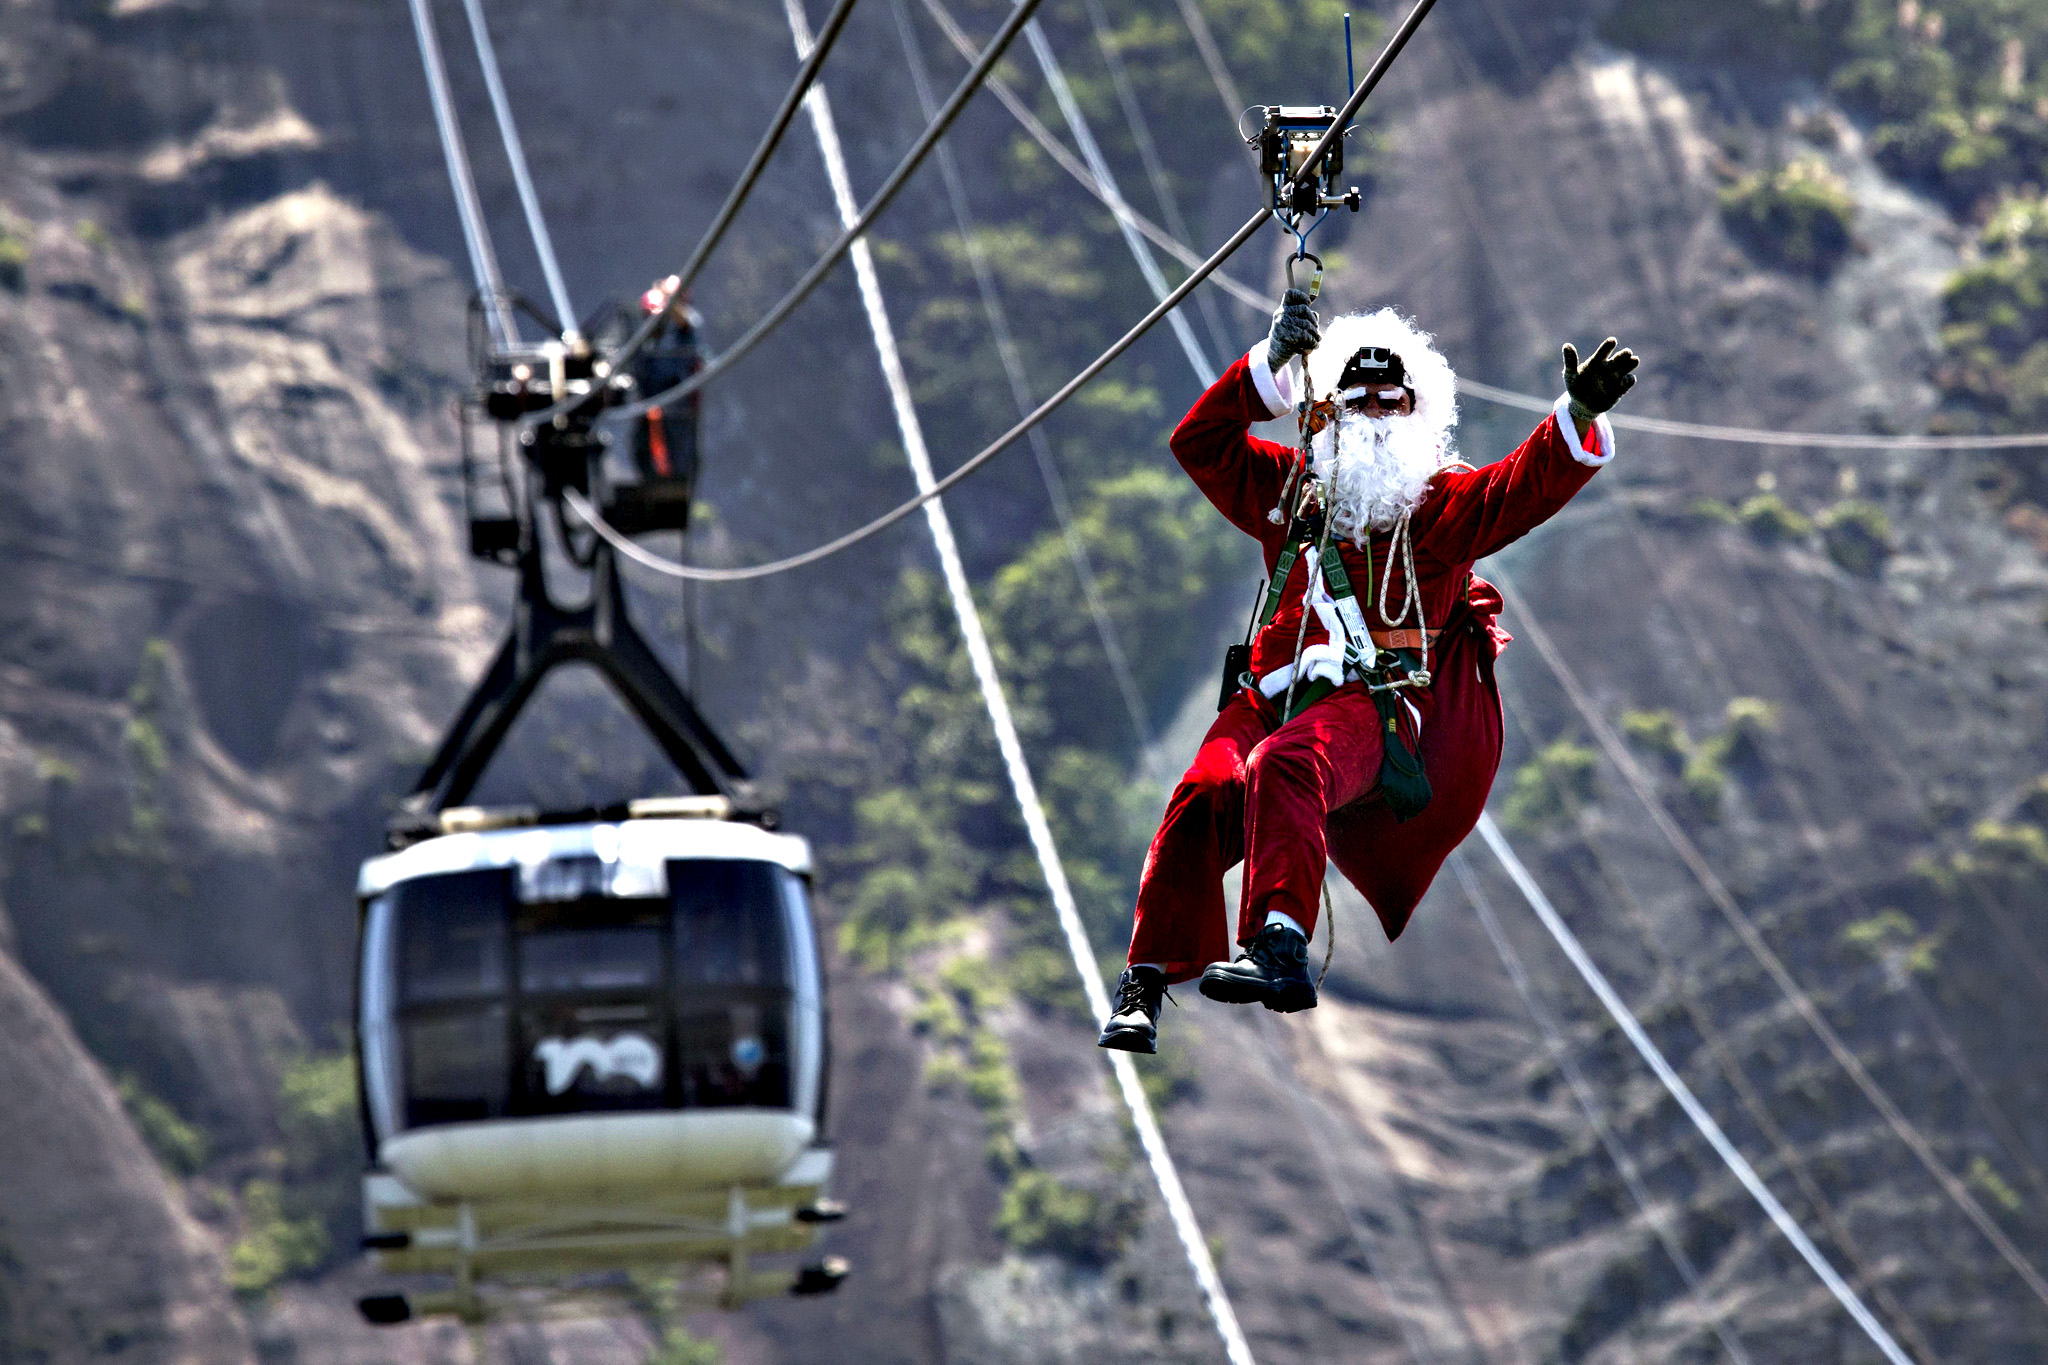 A man dressed as Santa Claus zip lines away from Sugar Loaf mountain after riding on top of a cable car in Rio de Janeiro, Brazil, Thursday, Dec. 18, 2014. The cable car company surprised tourists with a visit from Santa to celebrate Christmas.